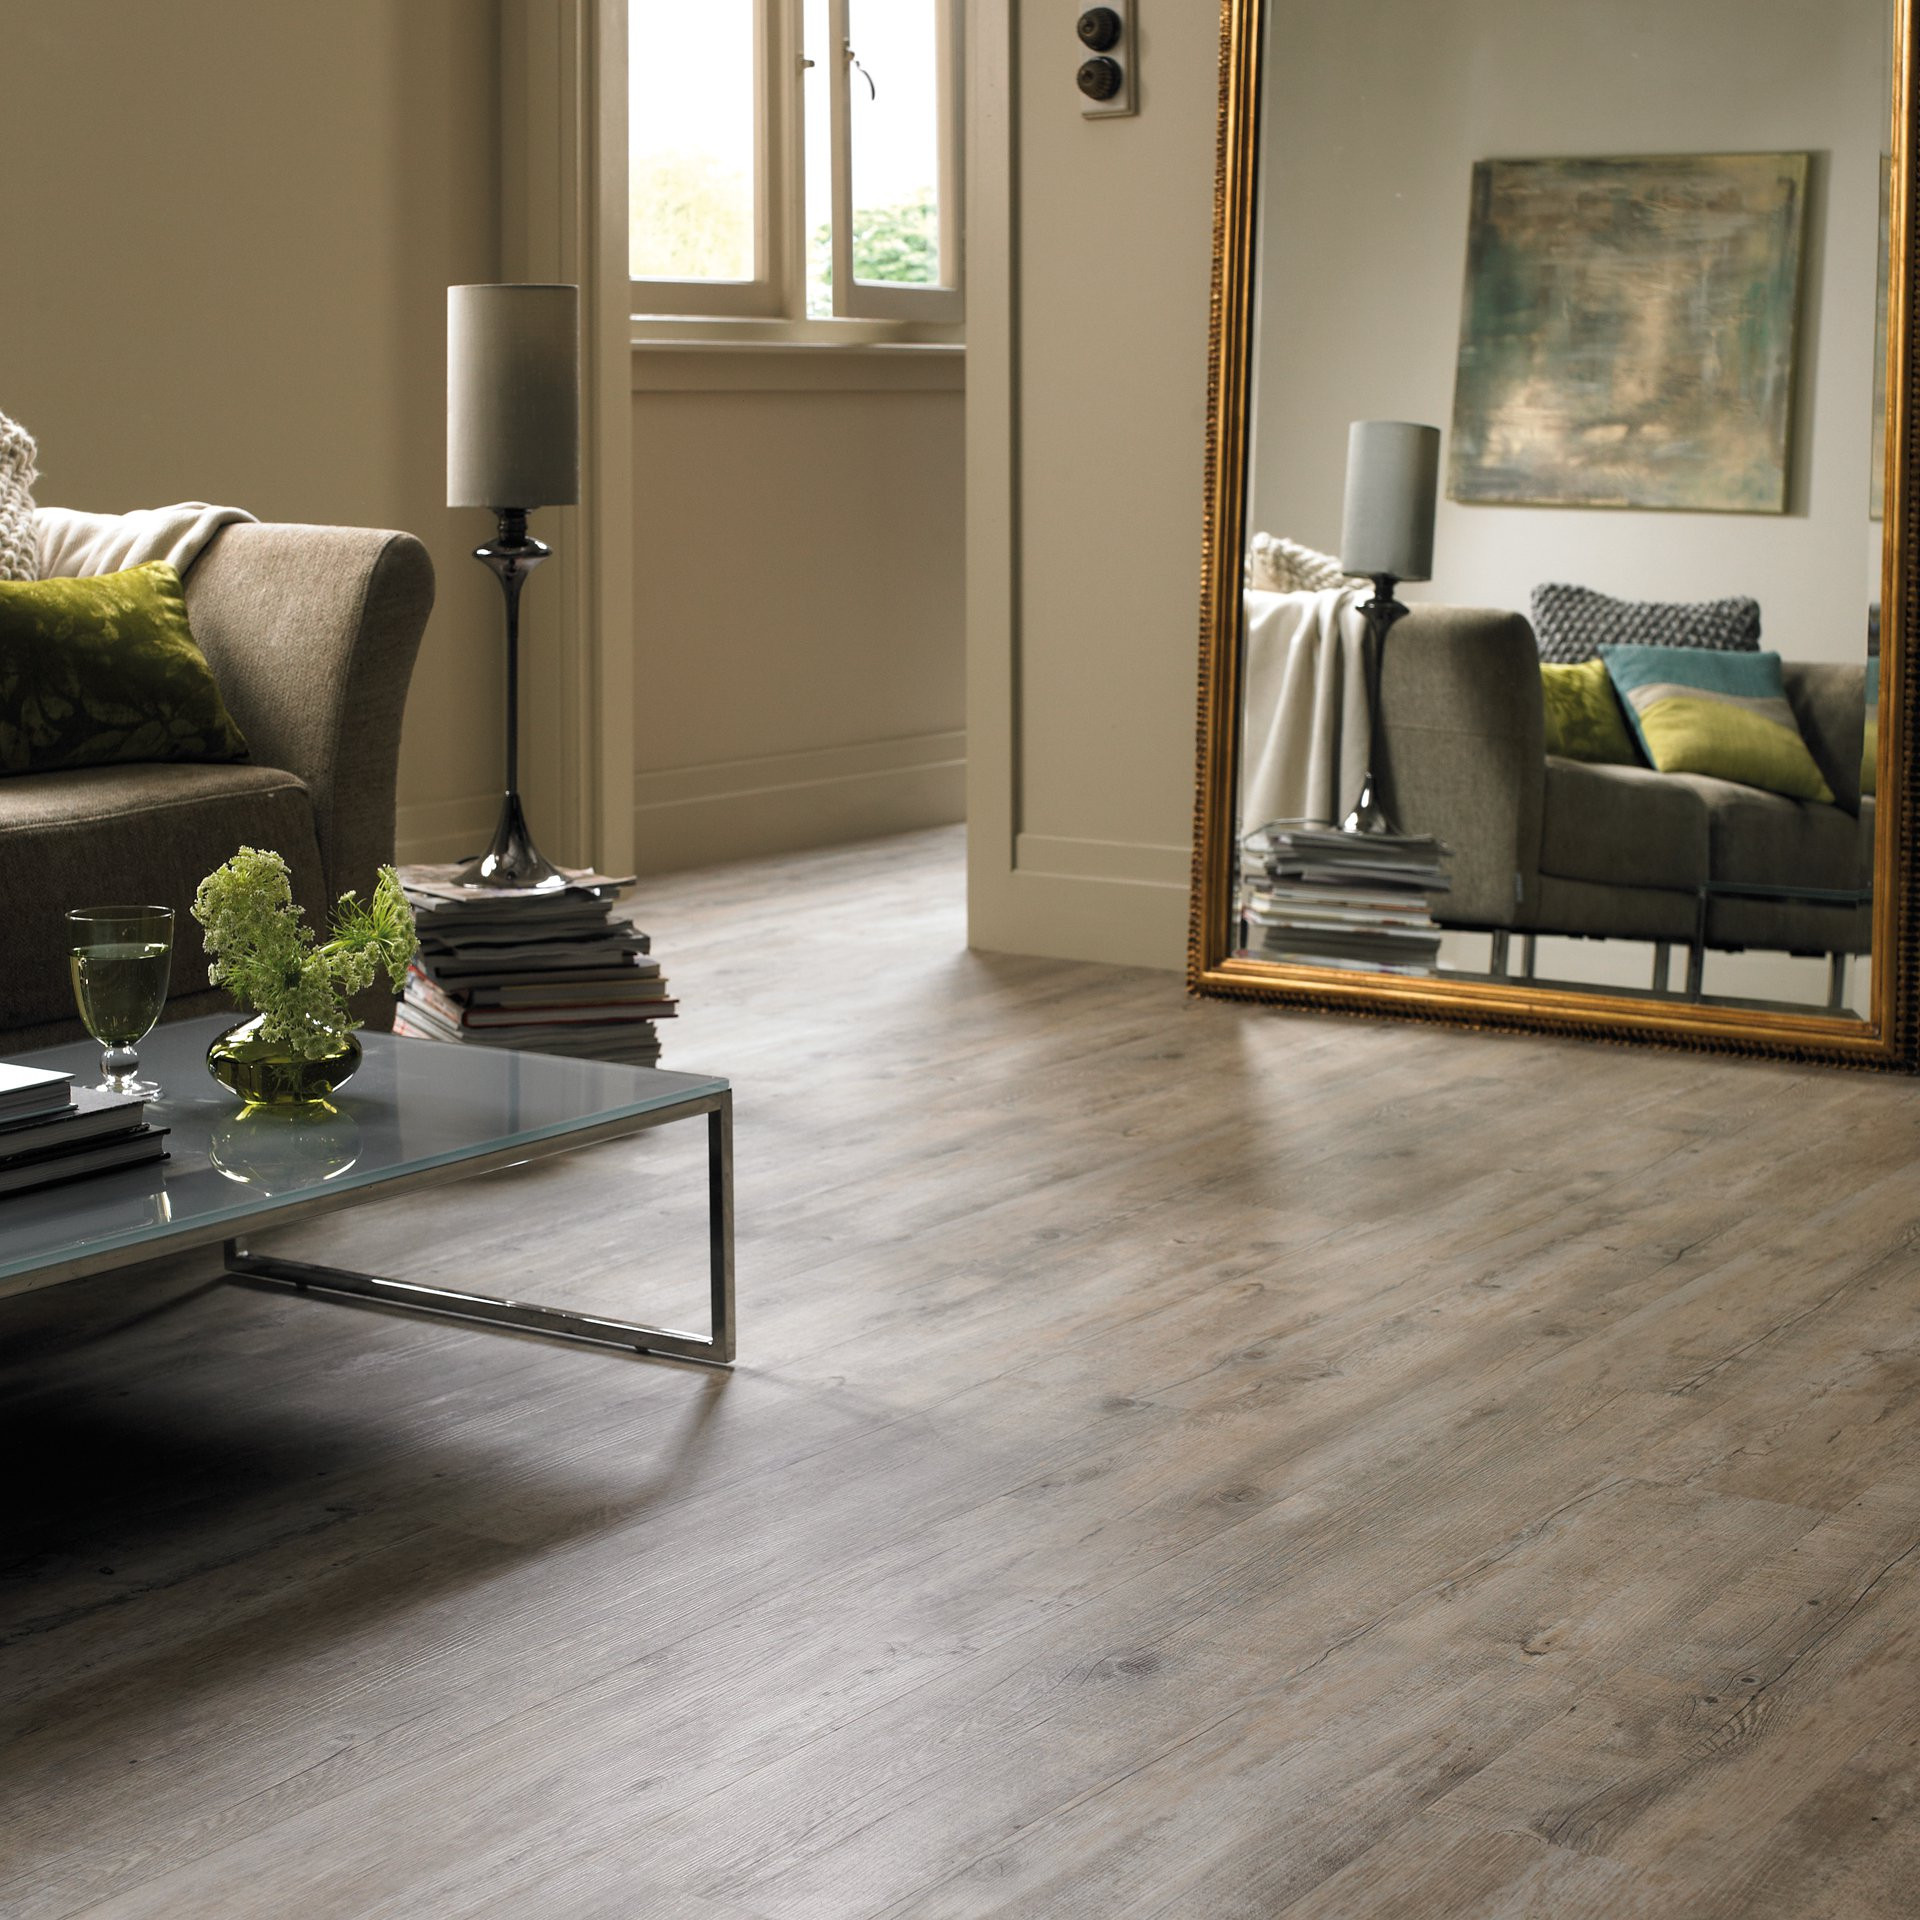 Best ideas about Living Room Flooring . Save or Pin Lounge Flooring Ideas for Your Home Now.